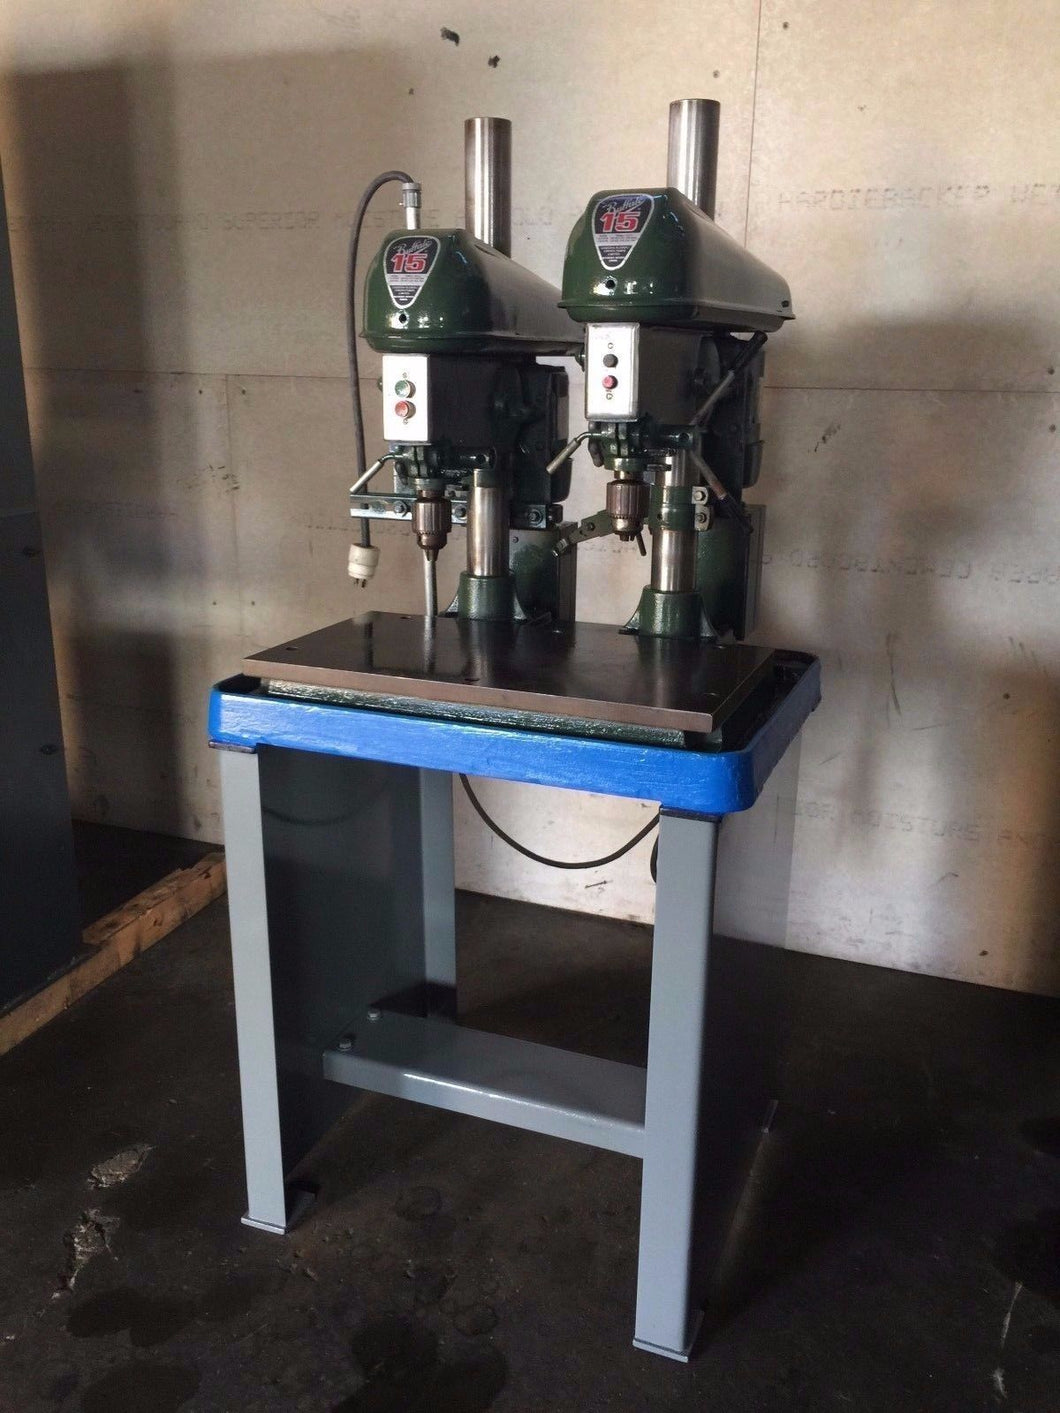 BULLAFO 15 INCH HEAVY DUTY DUAL HEAD DRILL PRESS (OC768)